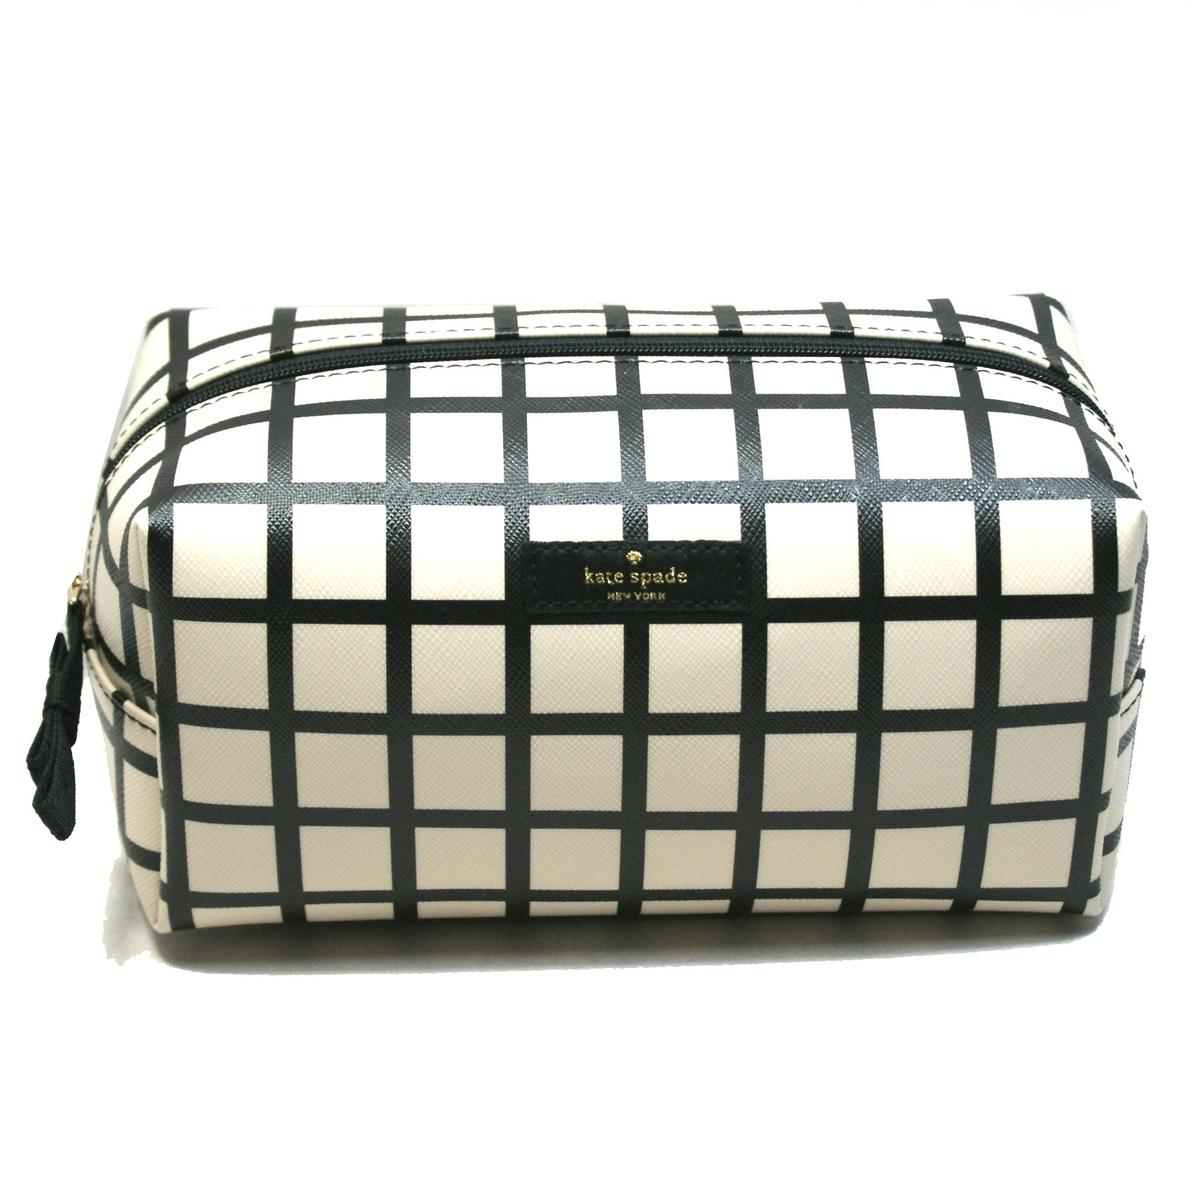 60225685ff06 Home · Kate Spade · Medium Davie Brightwater Drive Pouch  Cosmetic Bag.  CLICK THUMBNAIL TO ZOOM. Found ...